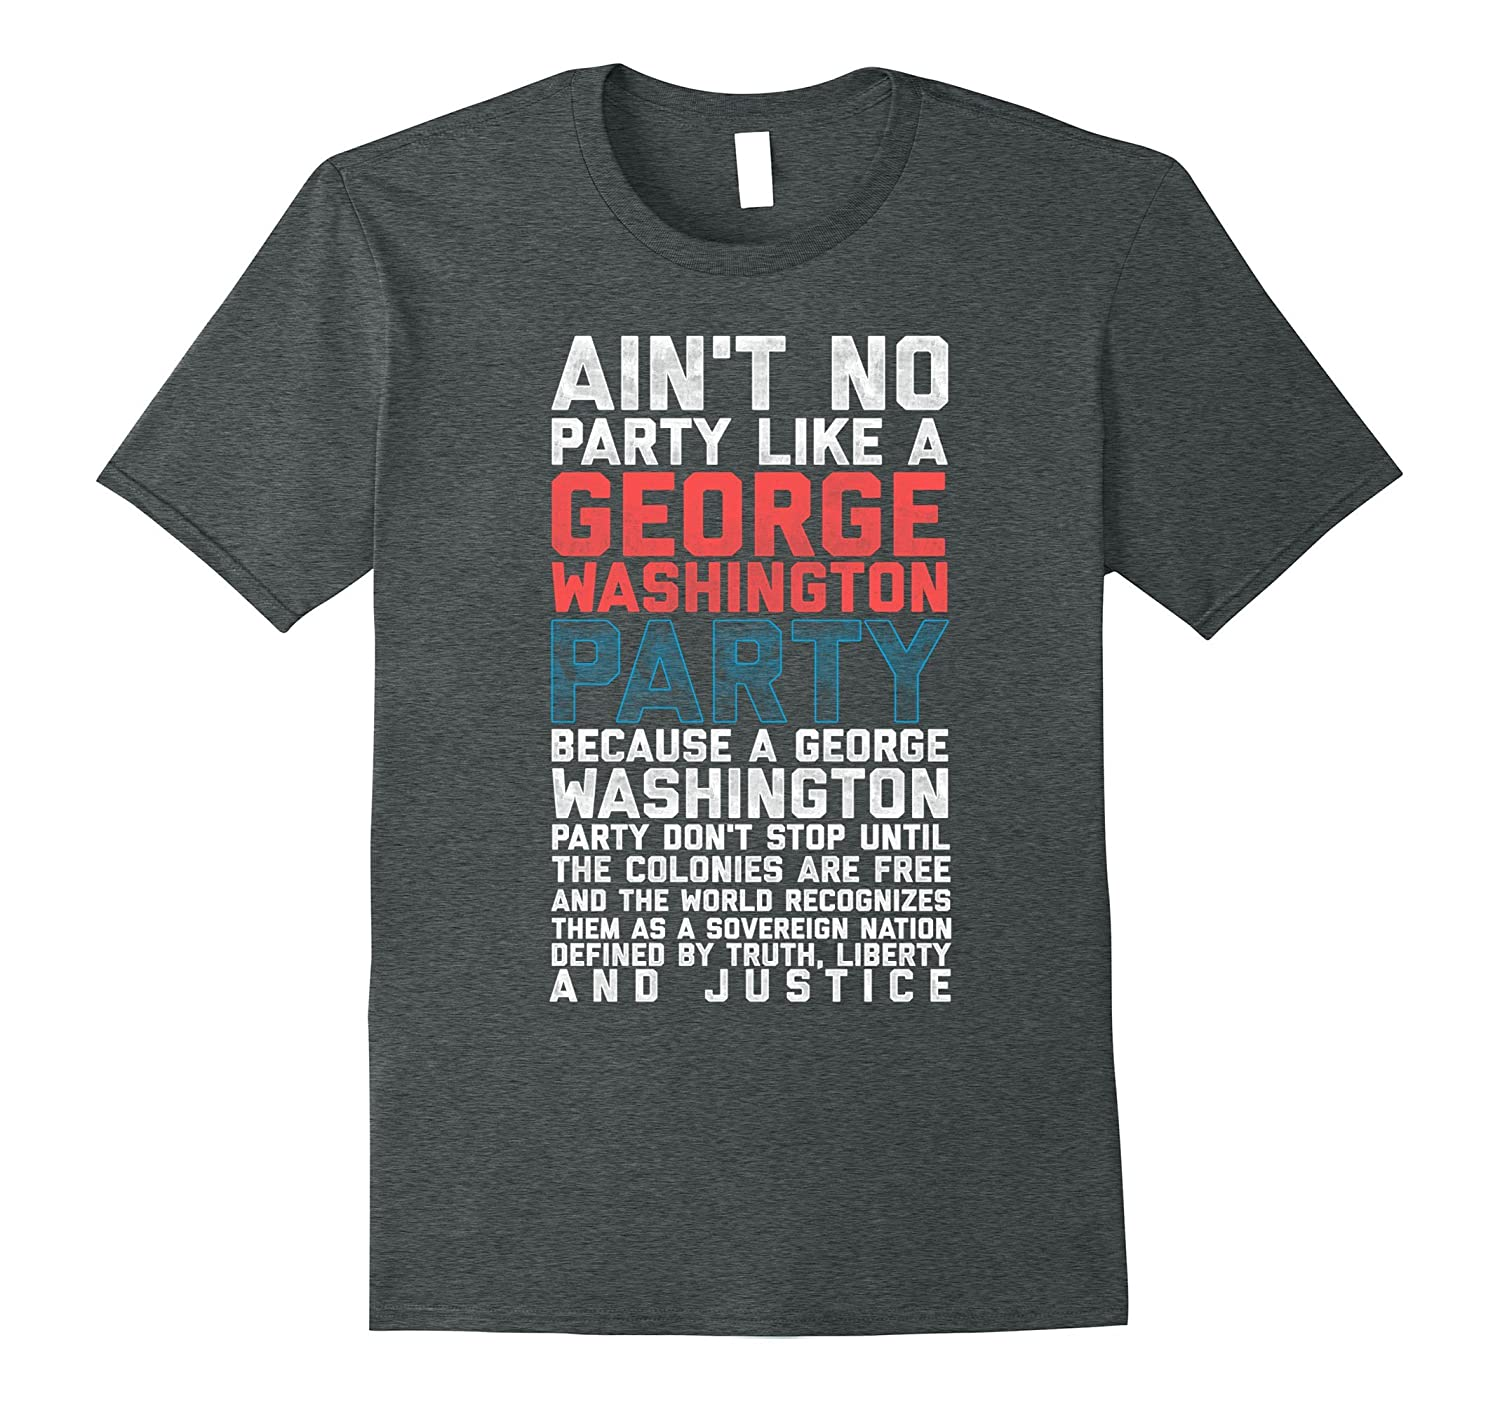 4th of July George Washington Party Funny Patriotic T-Shirt